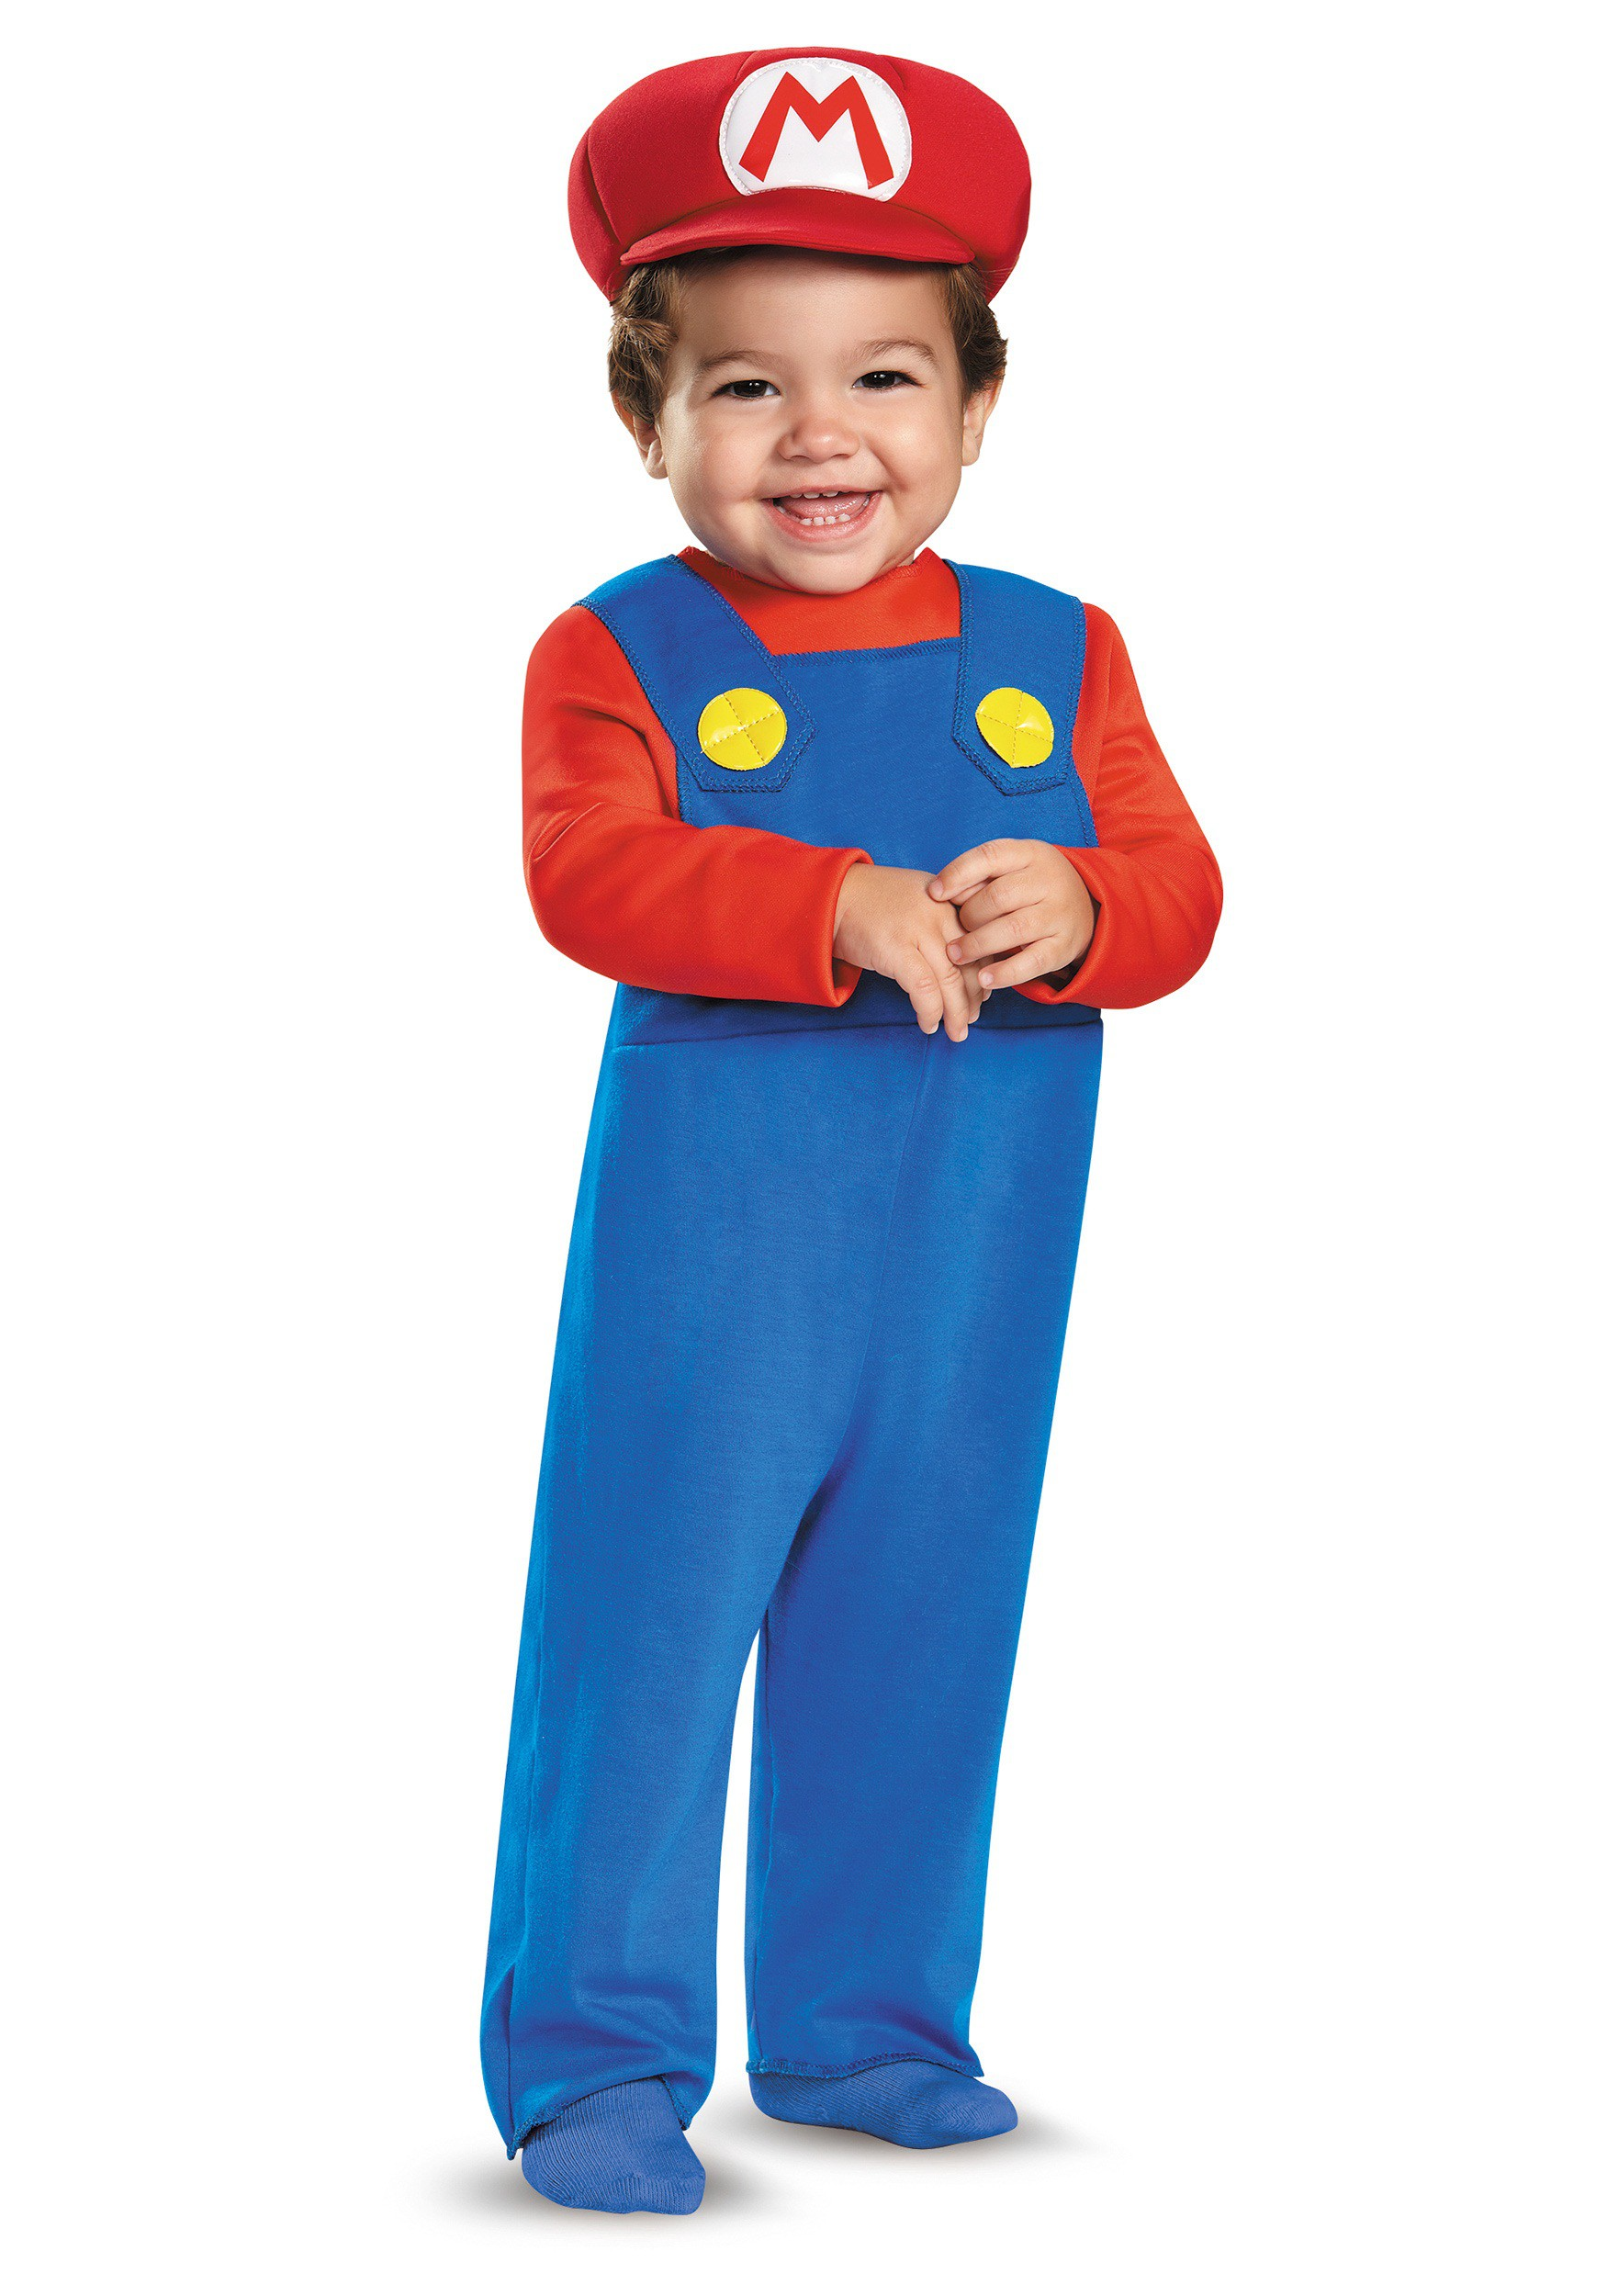 Shop Spirit Halloween for Halloween costumes for women, men, children and even pets! Over stores nationwide for Halloween costumes, decorations and more to make this the best Halloween .